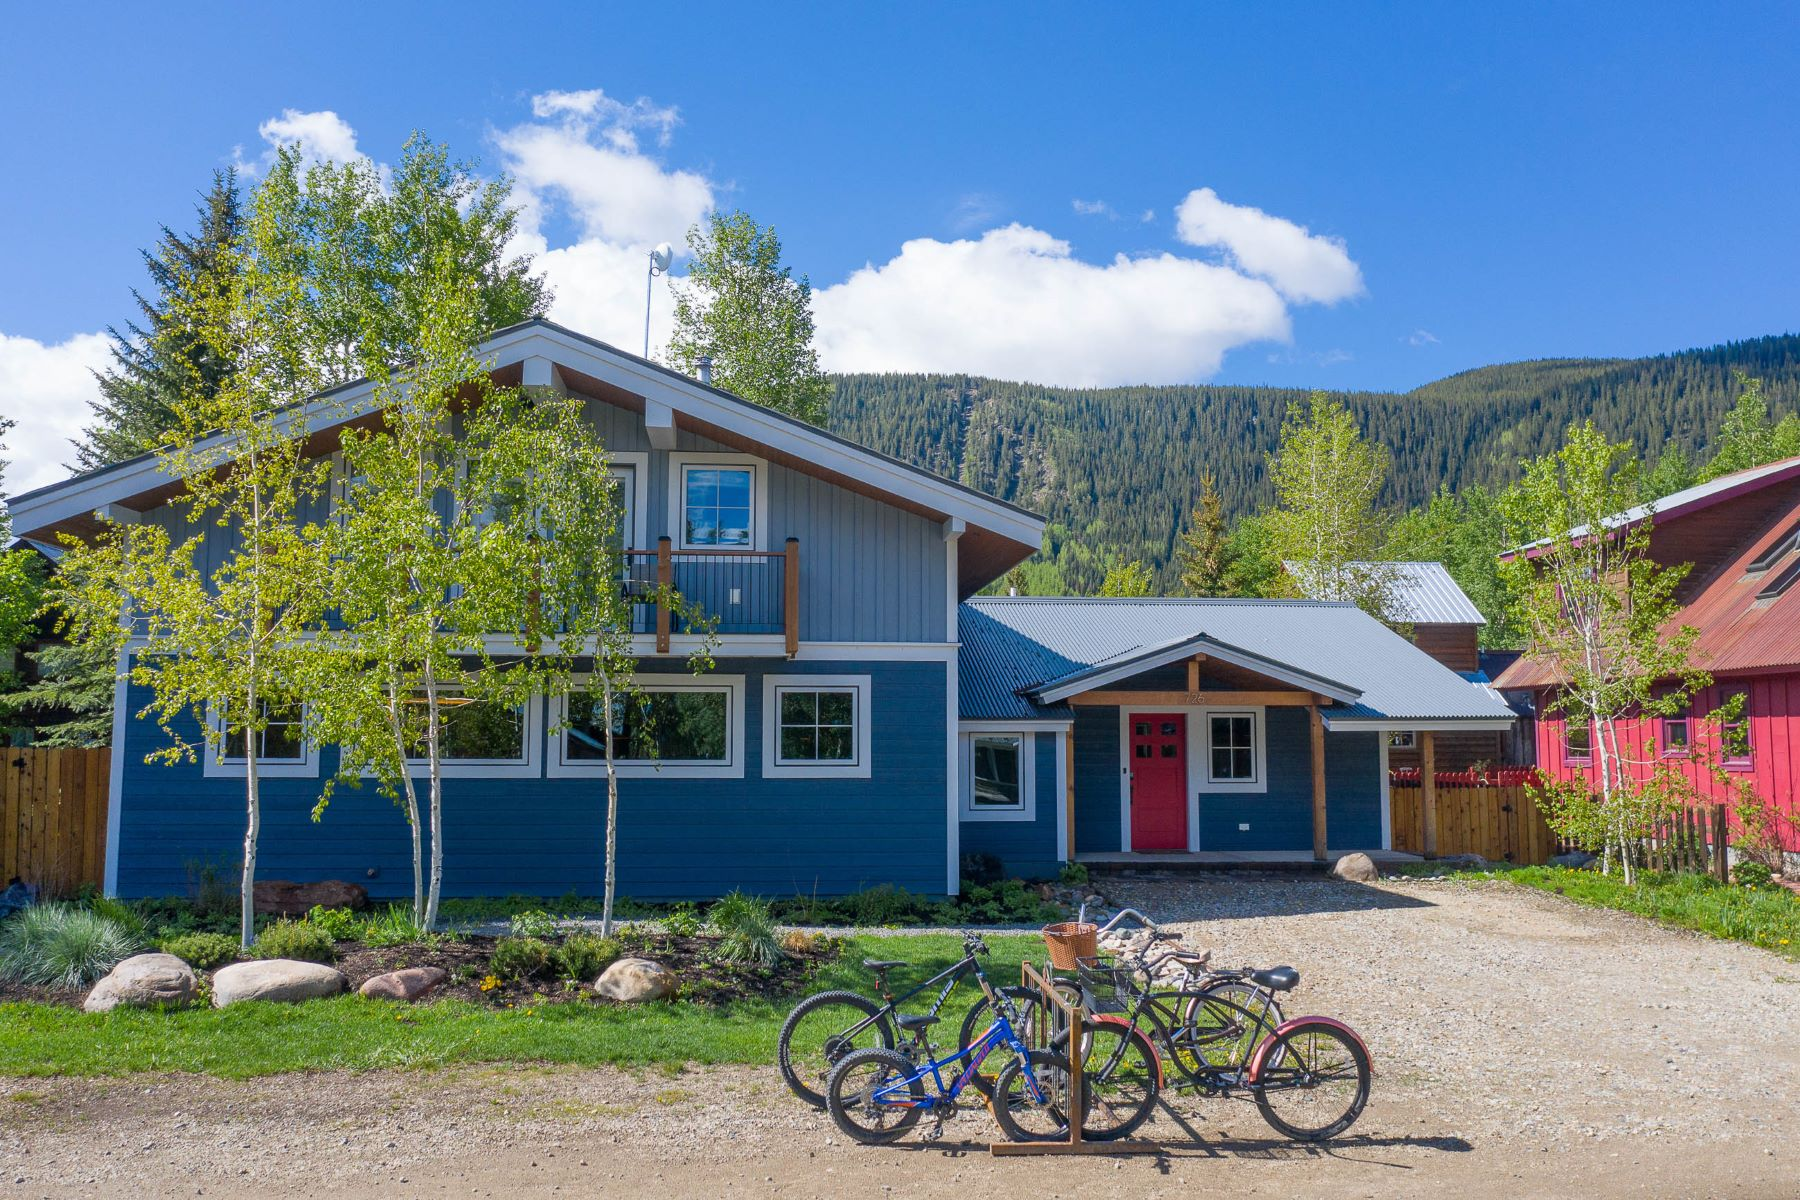 Single Family Homes for Sale at Crested Butte, Colorado 81224 United States